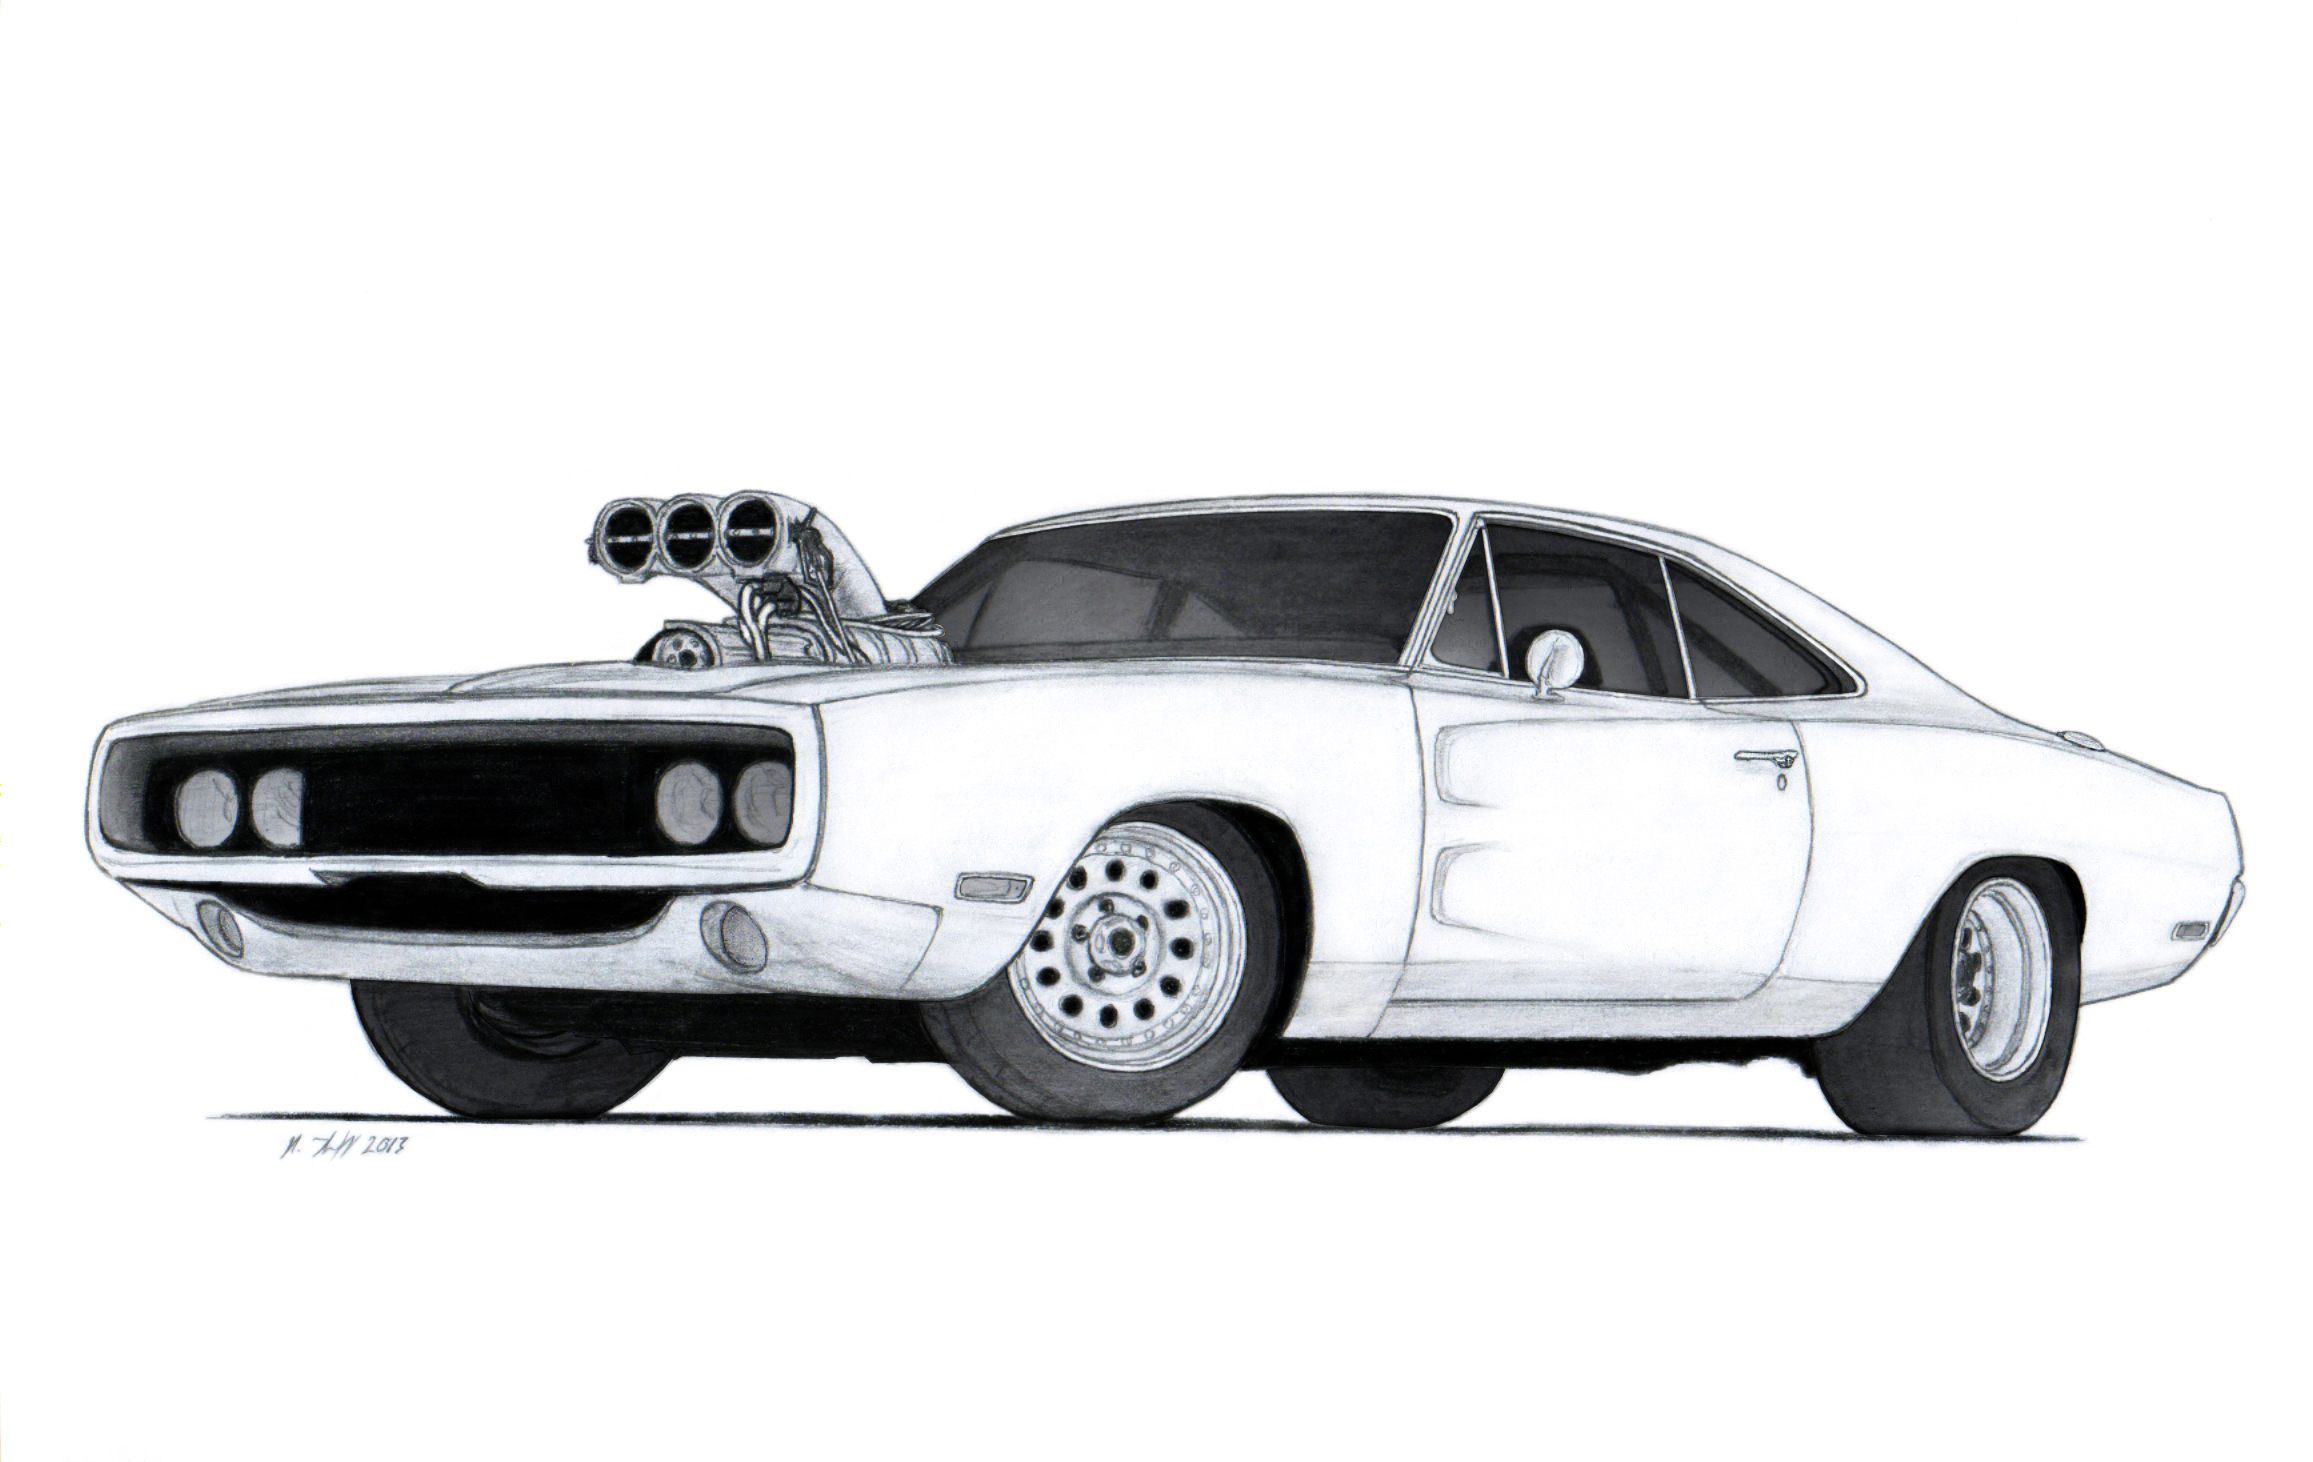 2013 Ram R T Dealers additionally 511369732661944634 in addition Antikes Auto together with Most Expensive Cars In The World Top 10 List additionally 68 Charger Hemi. on 60s muscle cars coloring pages